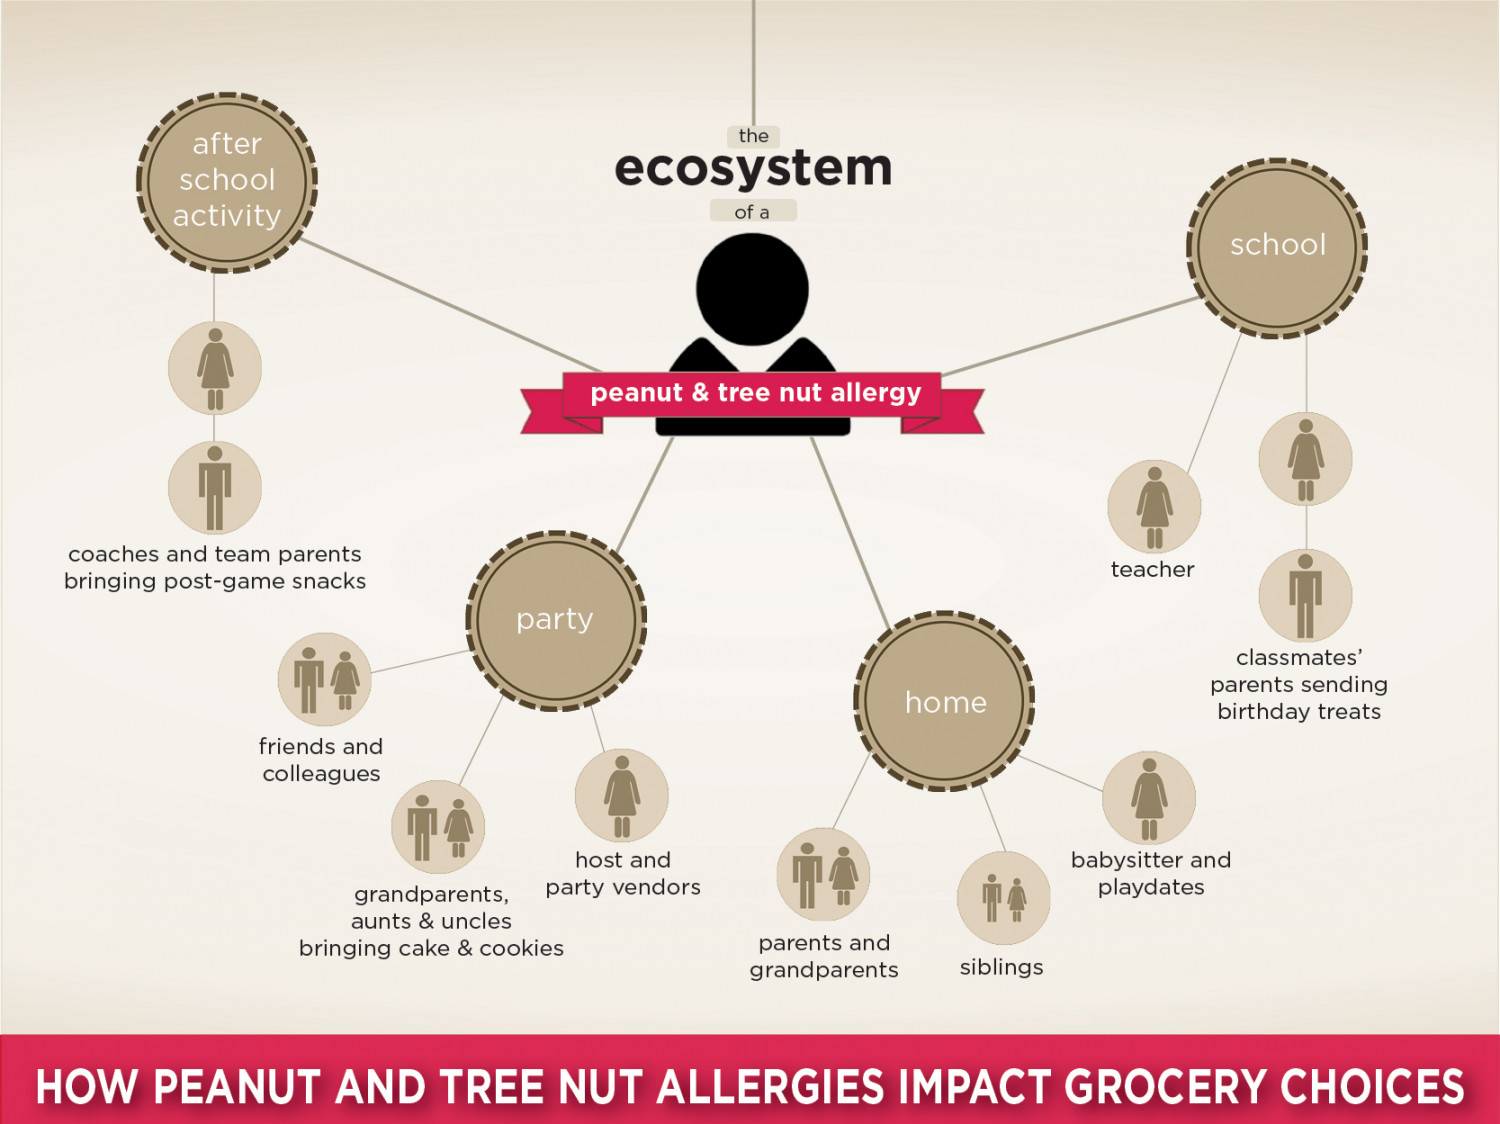 The Ecosystem of a Peanut & Tree Nut Allergy Infographic